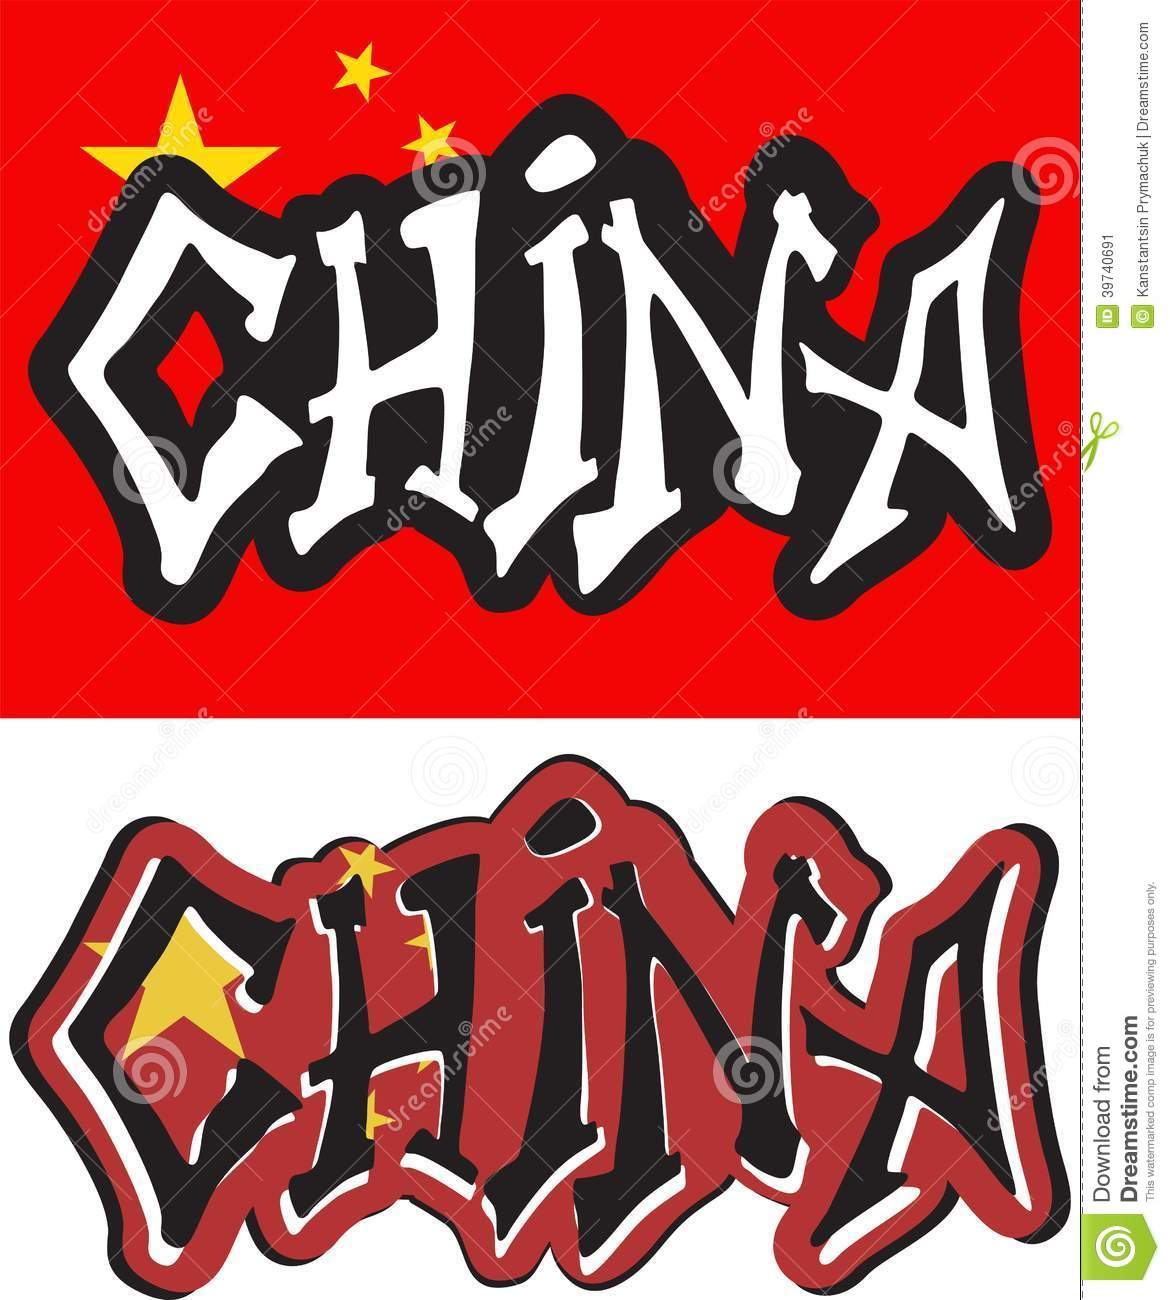 China Word Graffiti Different Style. Vector Stock Vector - Image ...